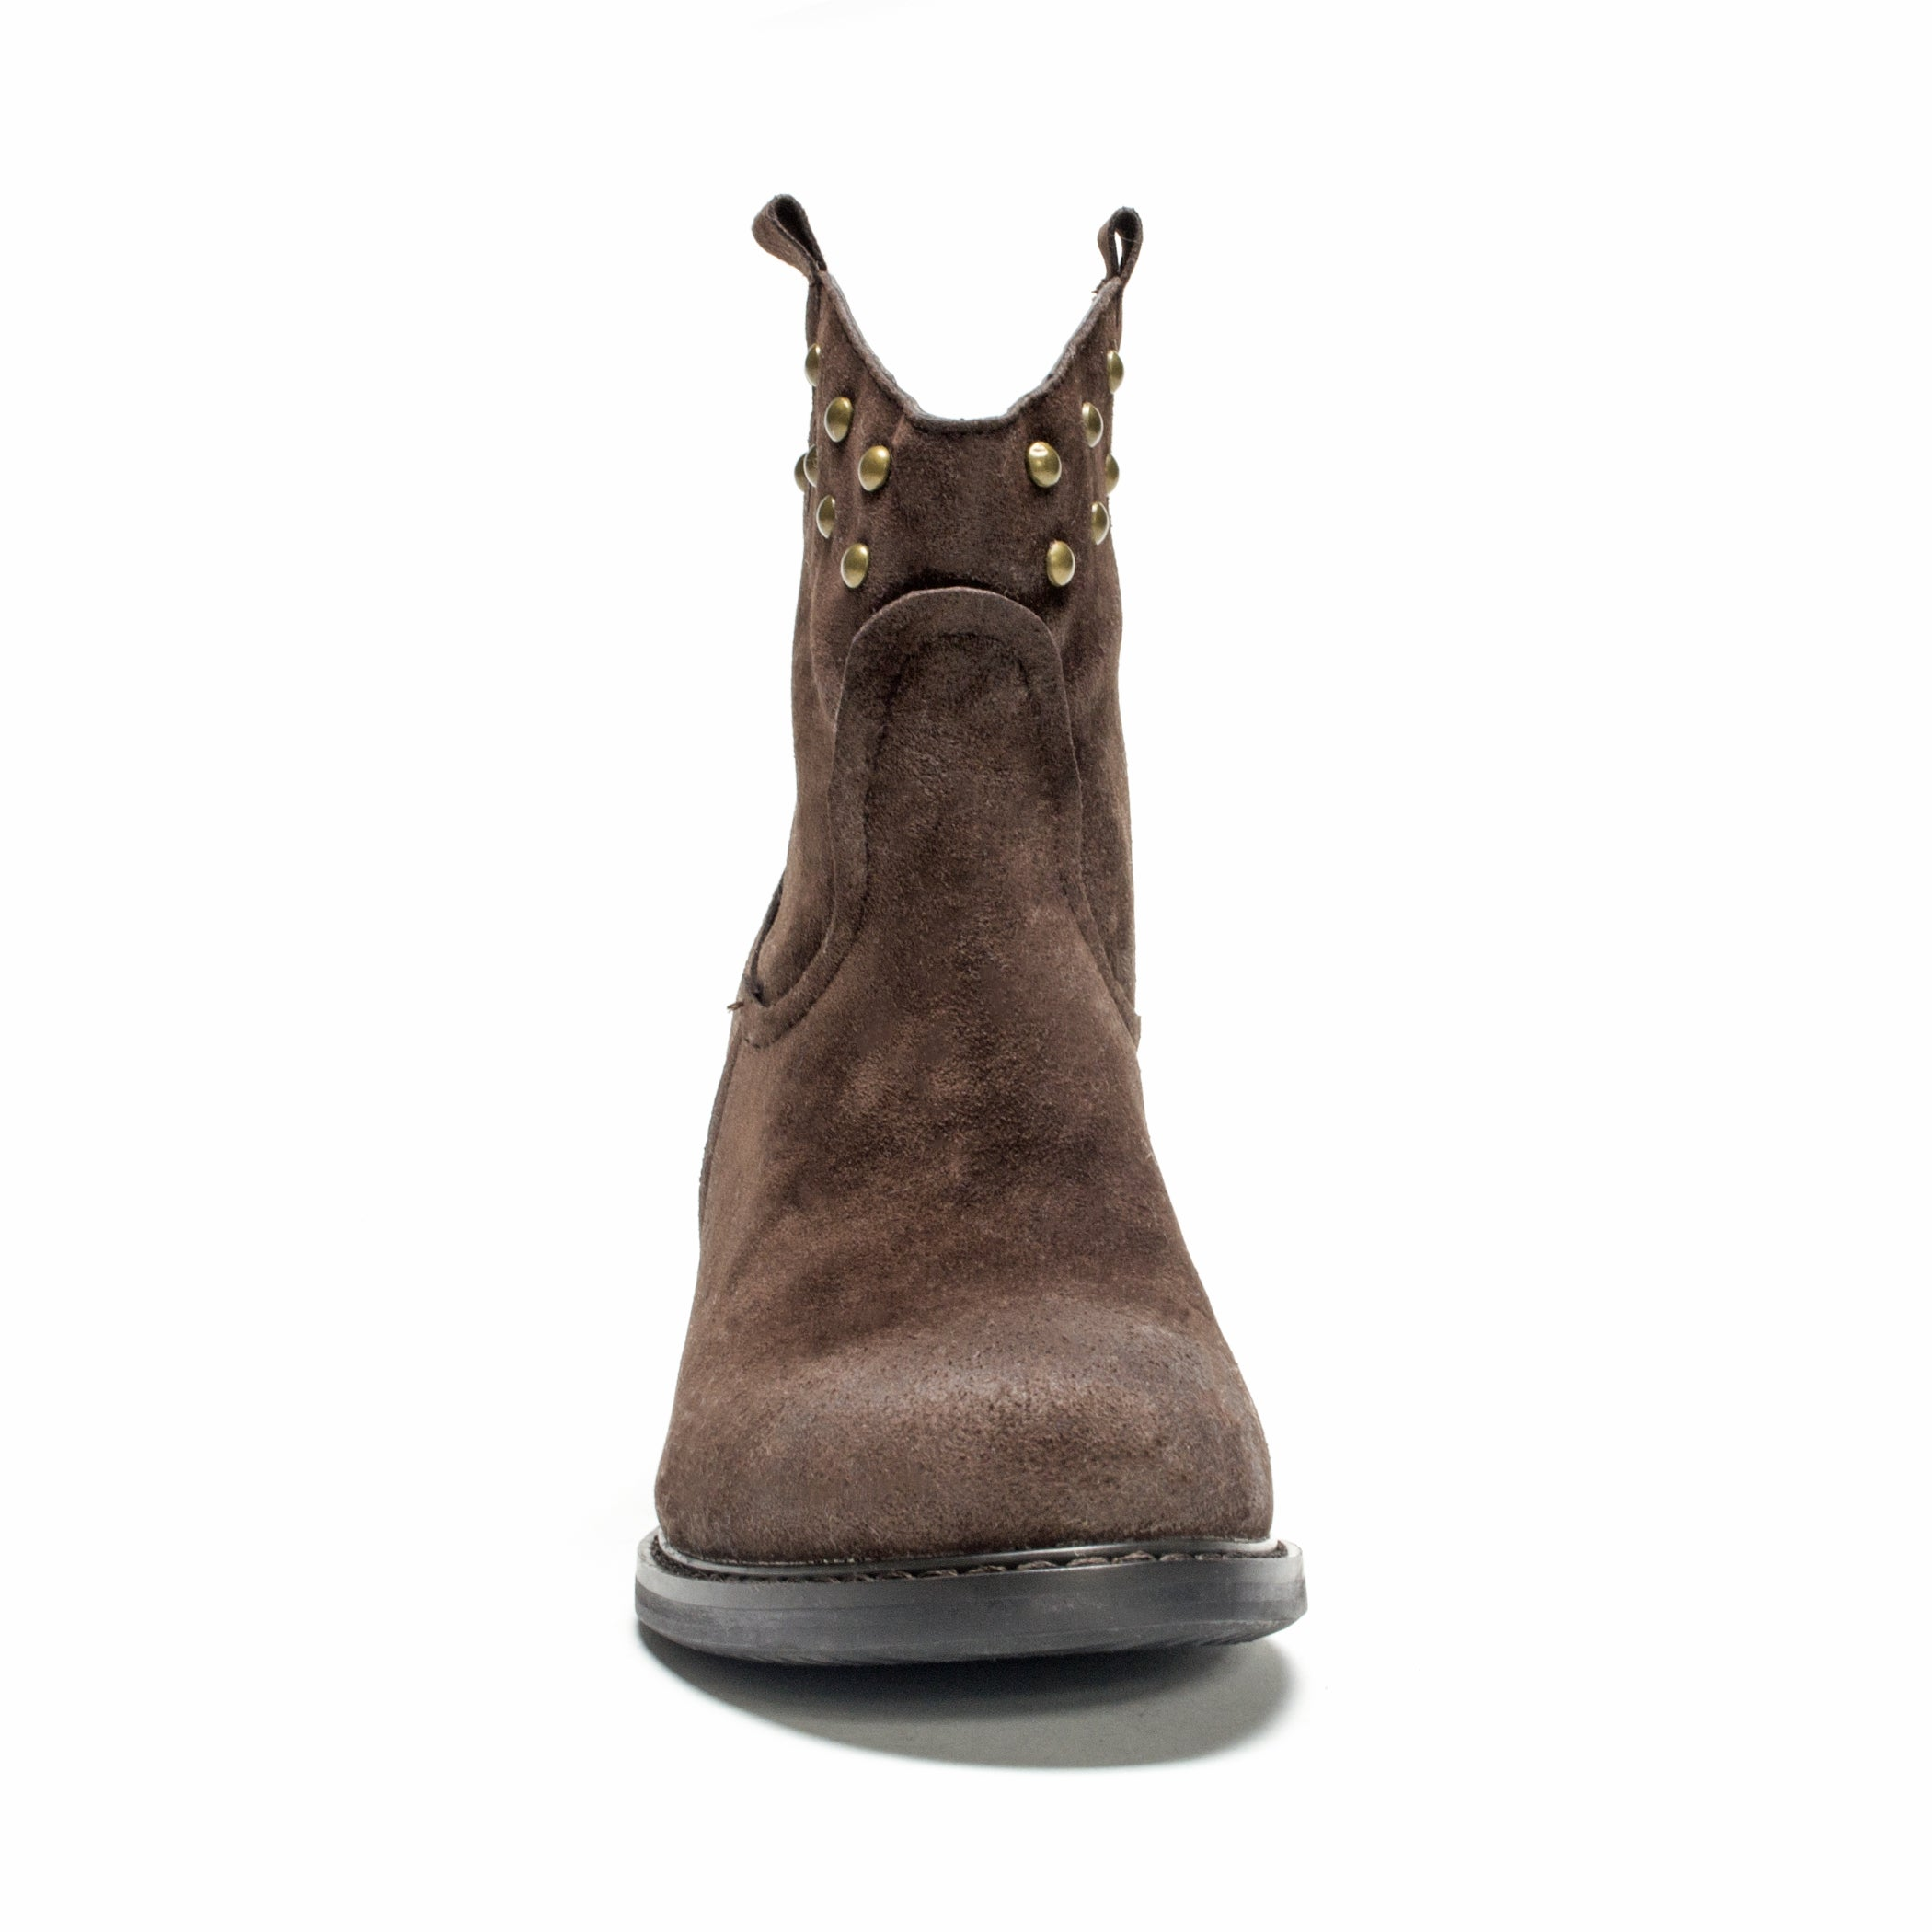 ad1d2a8ea774 Shop Muk Luks Women s Brown Talia Boot - Ships To Canada - Overstock.ca -  10398364